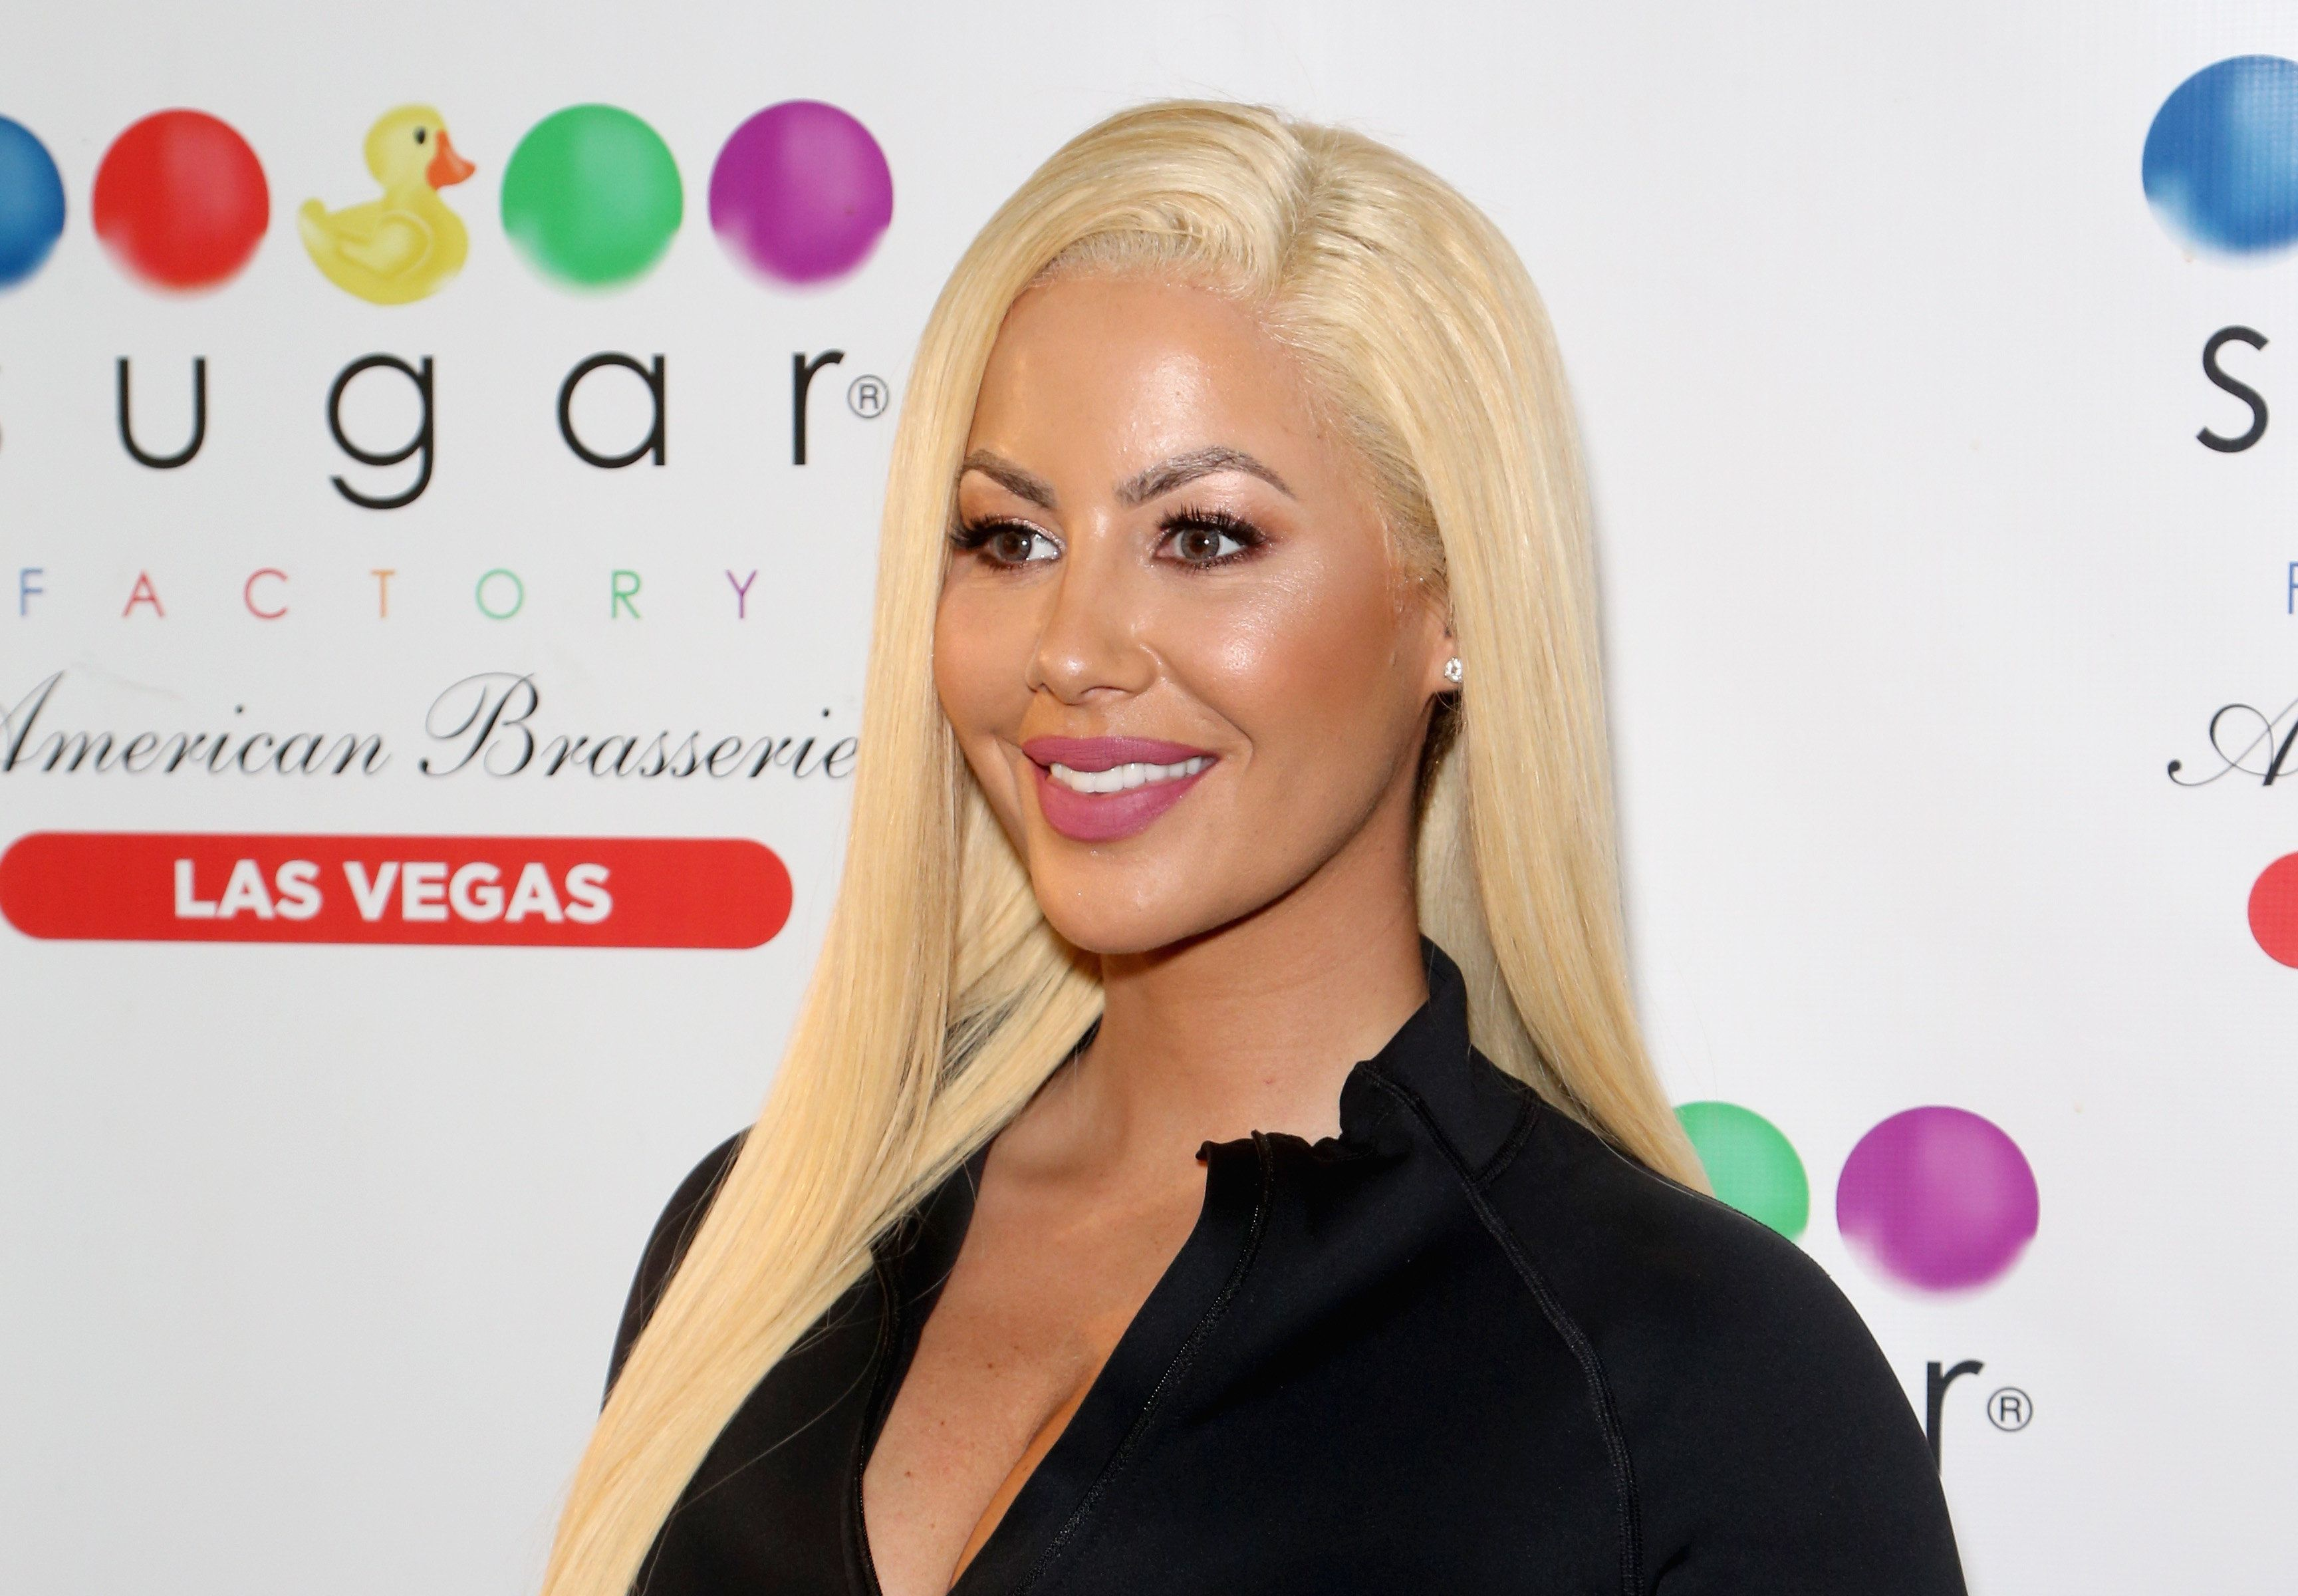 LAS VEGAS, NV - DECEMBER 02:  Model/actress Amber Rose hosts auditions for the 'Chocolate Rose' weekly program in the Chocolate Lounge at Sugar Factory American Brasserie at the Fashion Show mall on December 2, 2017 in Las Vegas, Nevada.  (Photo by Gabe Ginsberg/Getty Images)